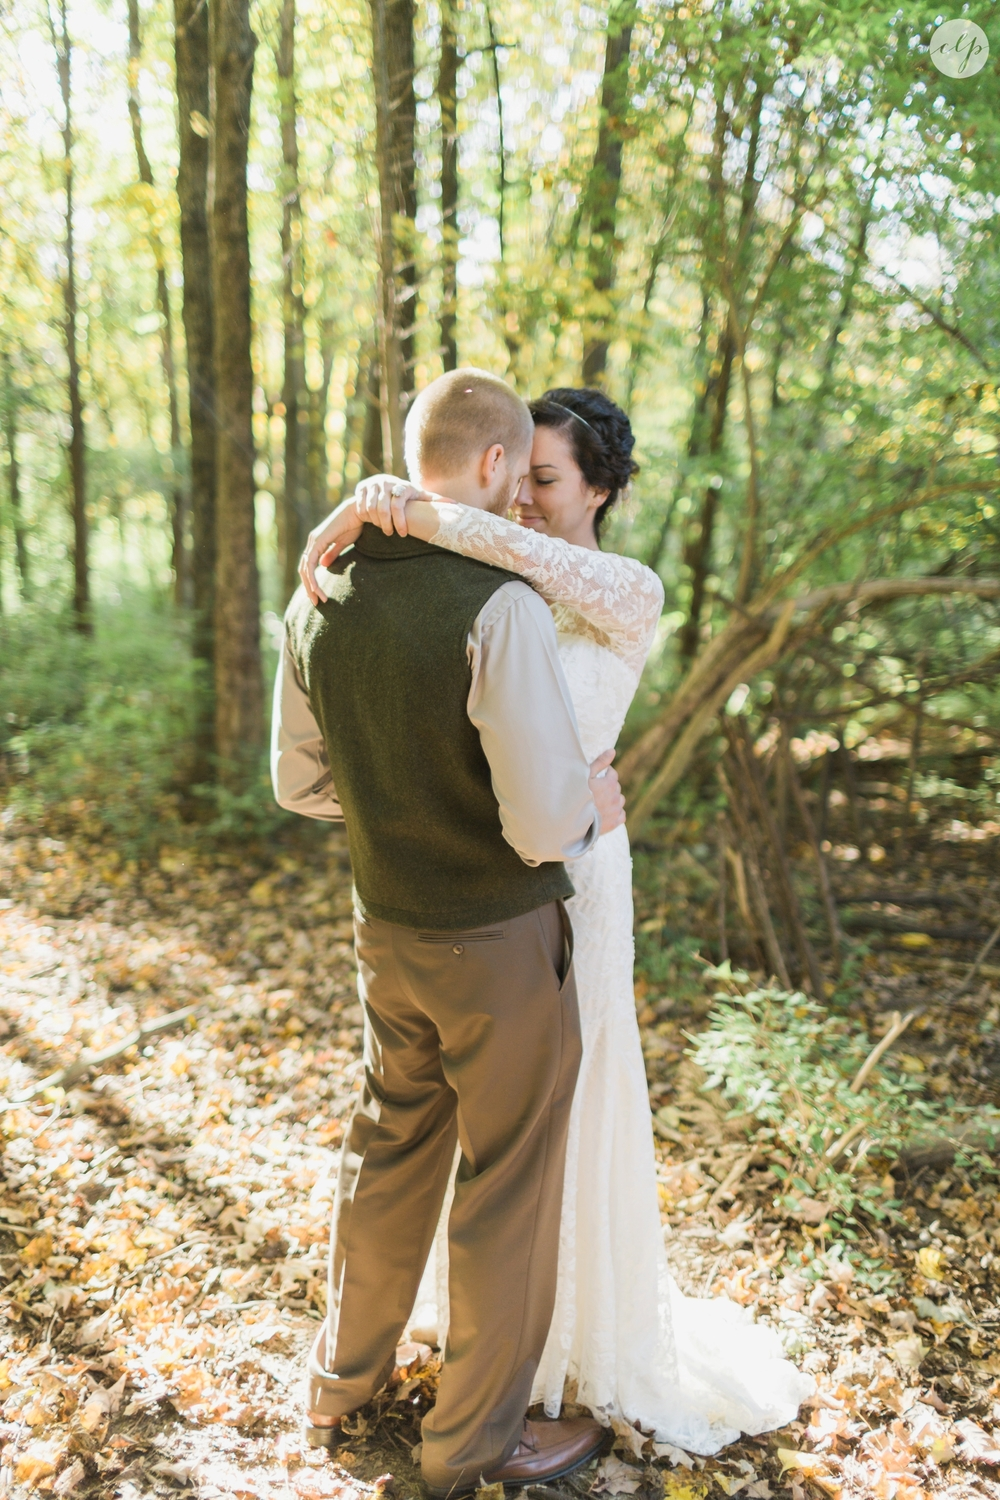 Outdoor-Wedding-in-the-Woods-Photography_4265.jpg